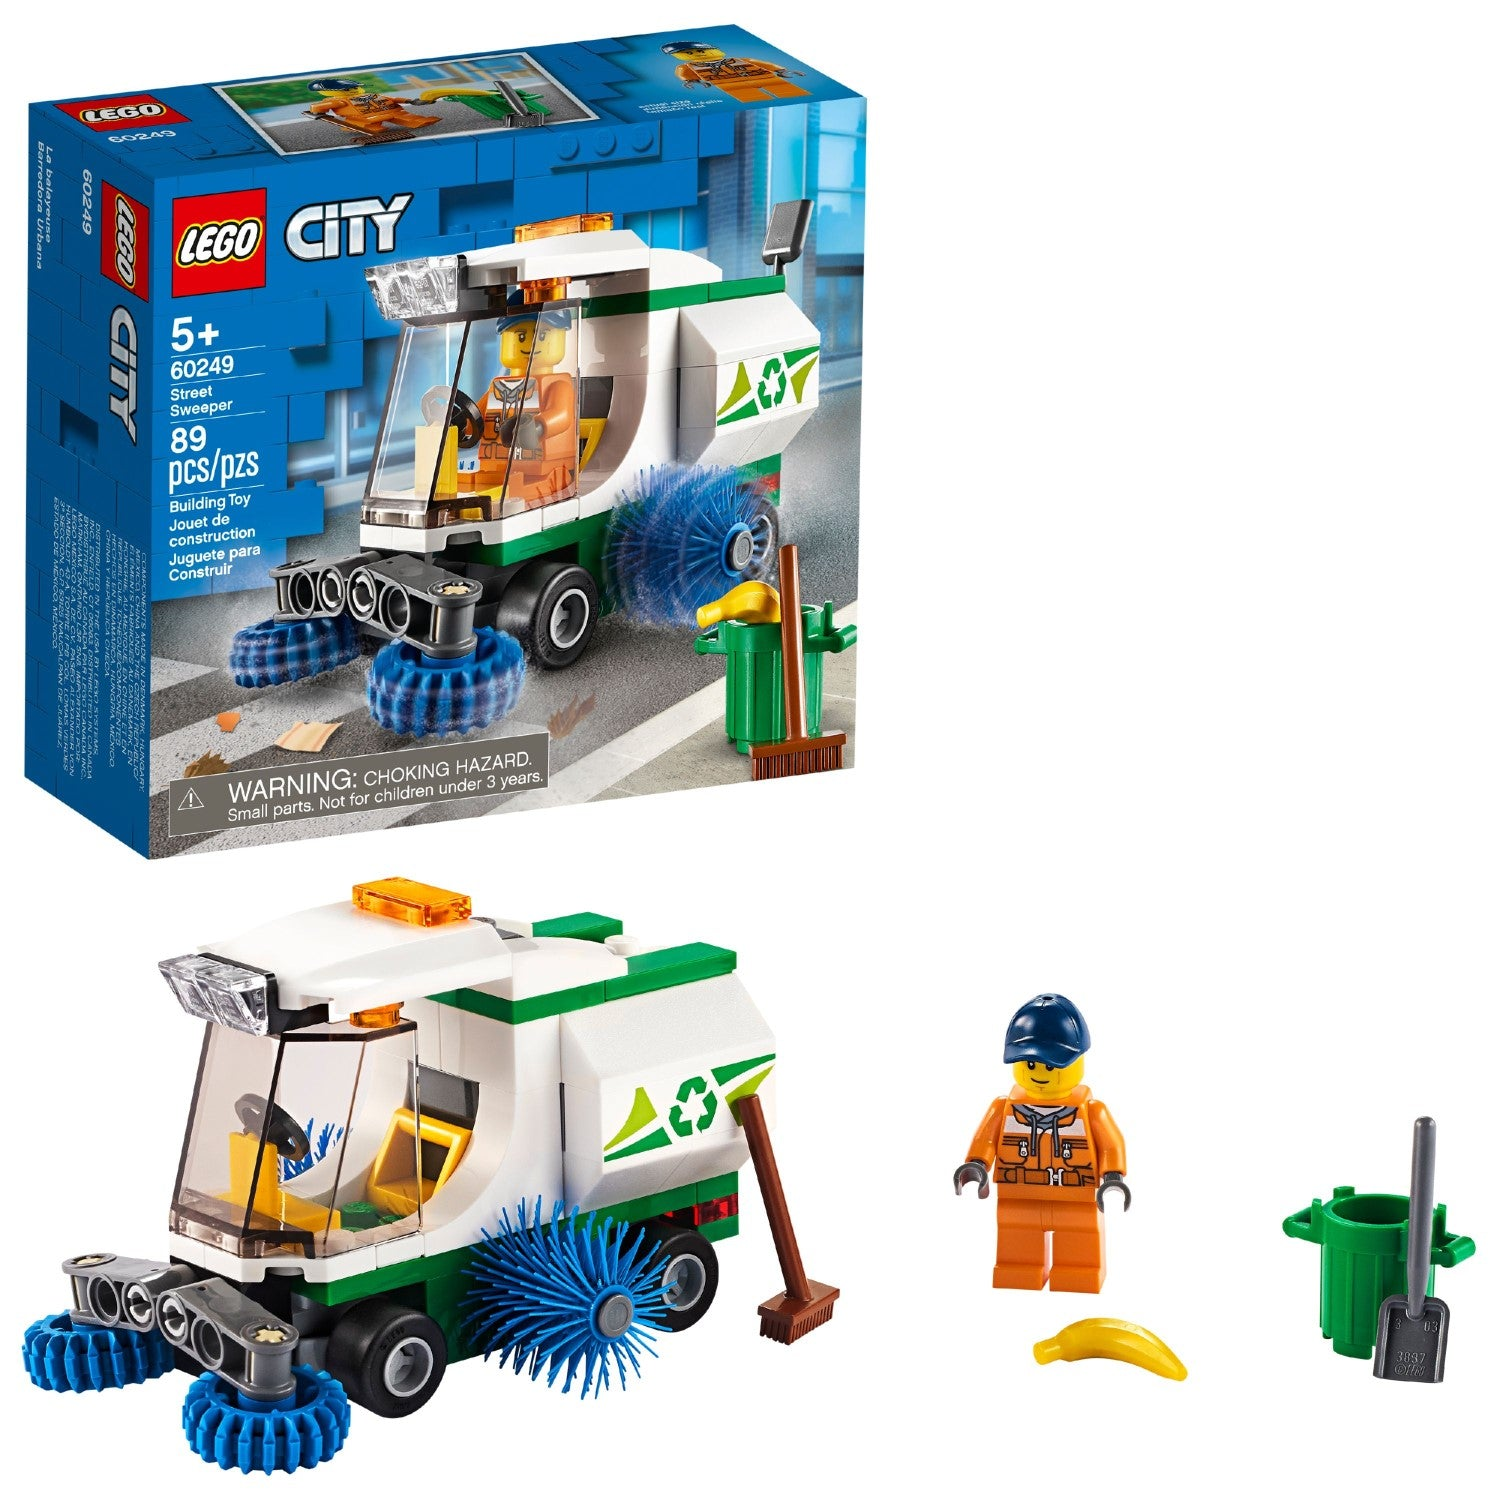 LEGO City Super Pack 2 in 1 Street Sweet and Forest Fire Set 66637 NEW IN BOX